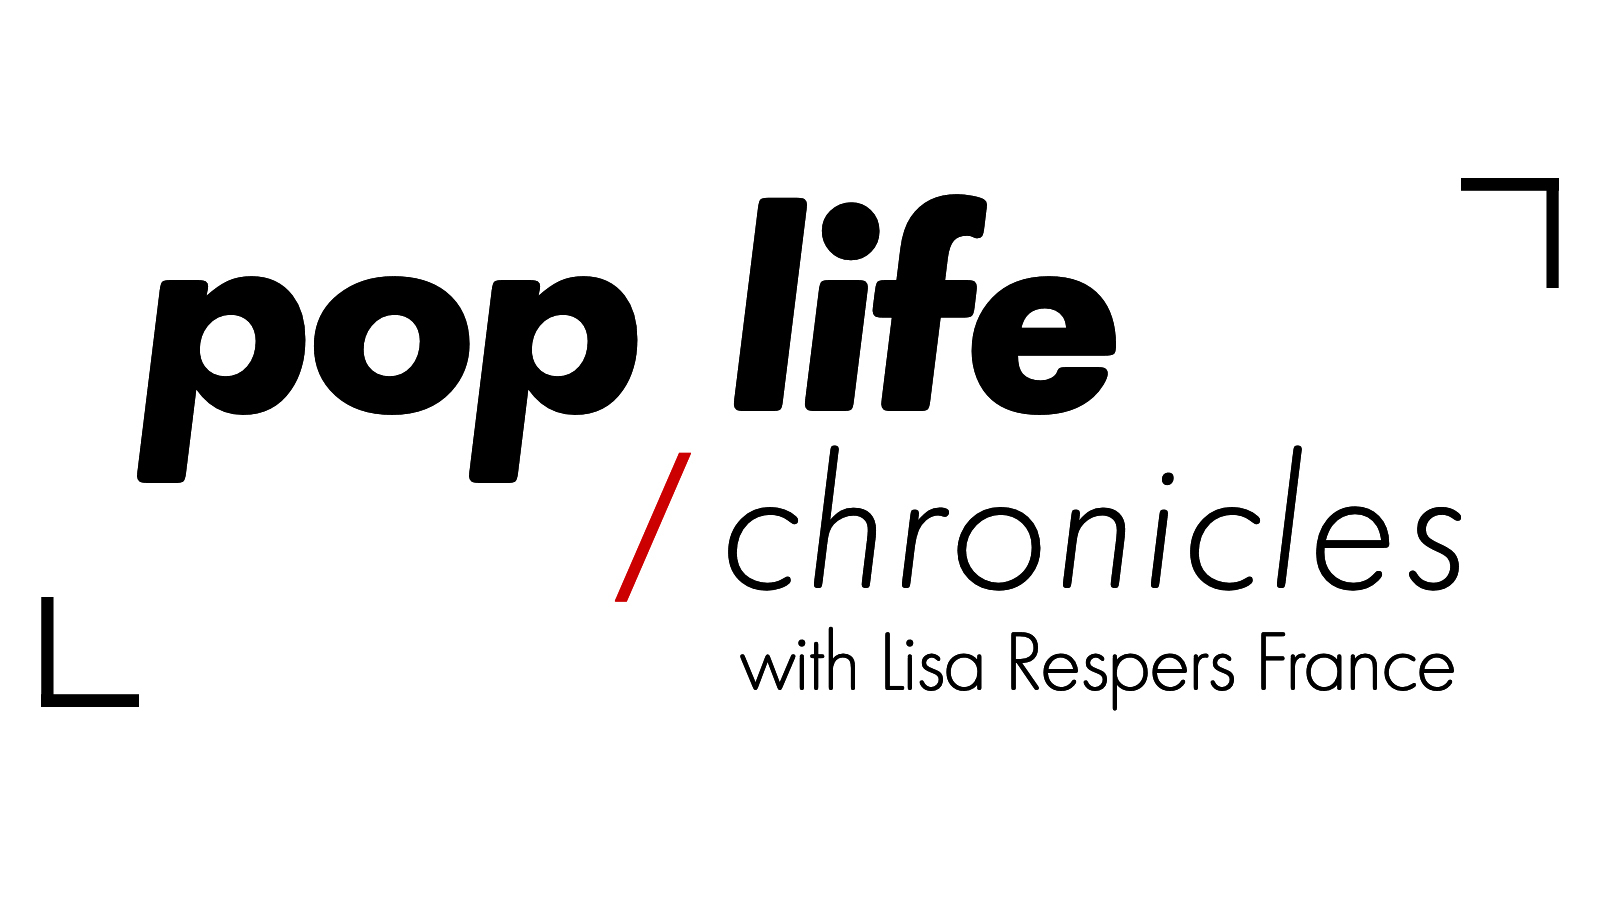 Pop Life Chronicles with Lisa Respers France